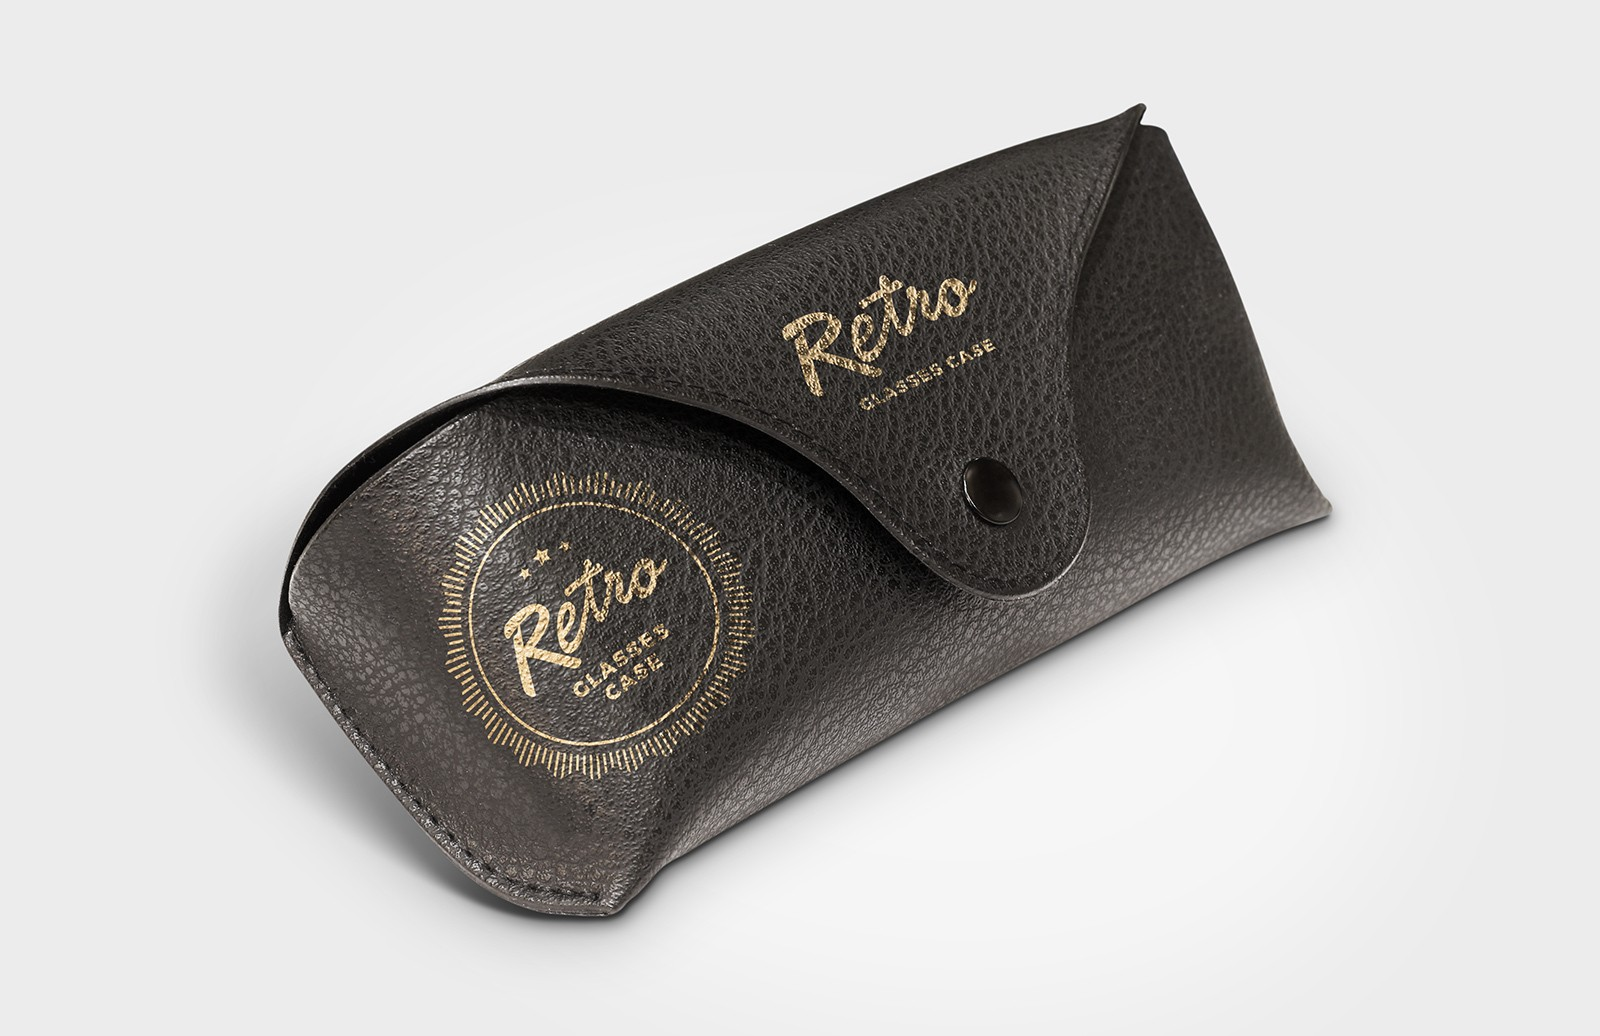 Retro Glasses Case Mockup for Photoshop